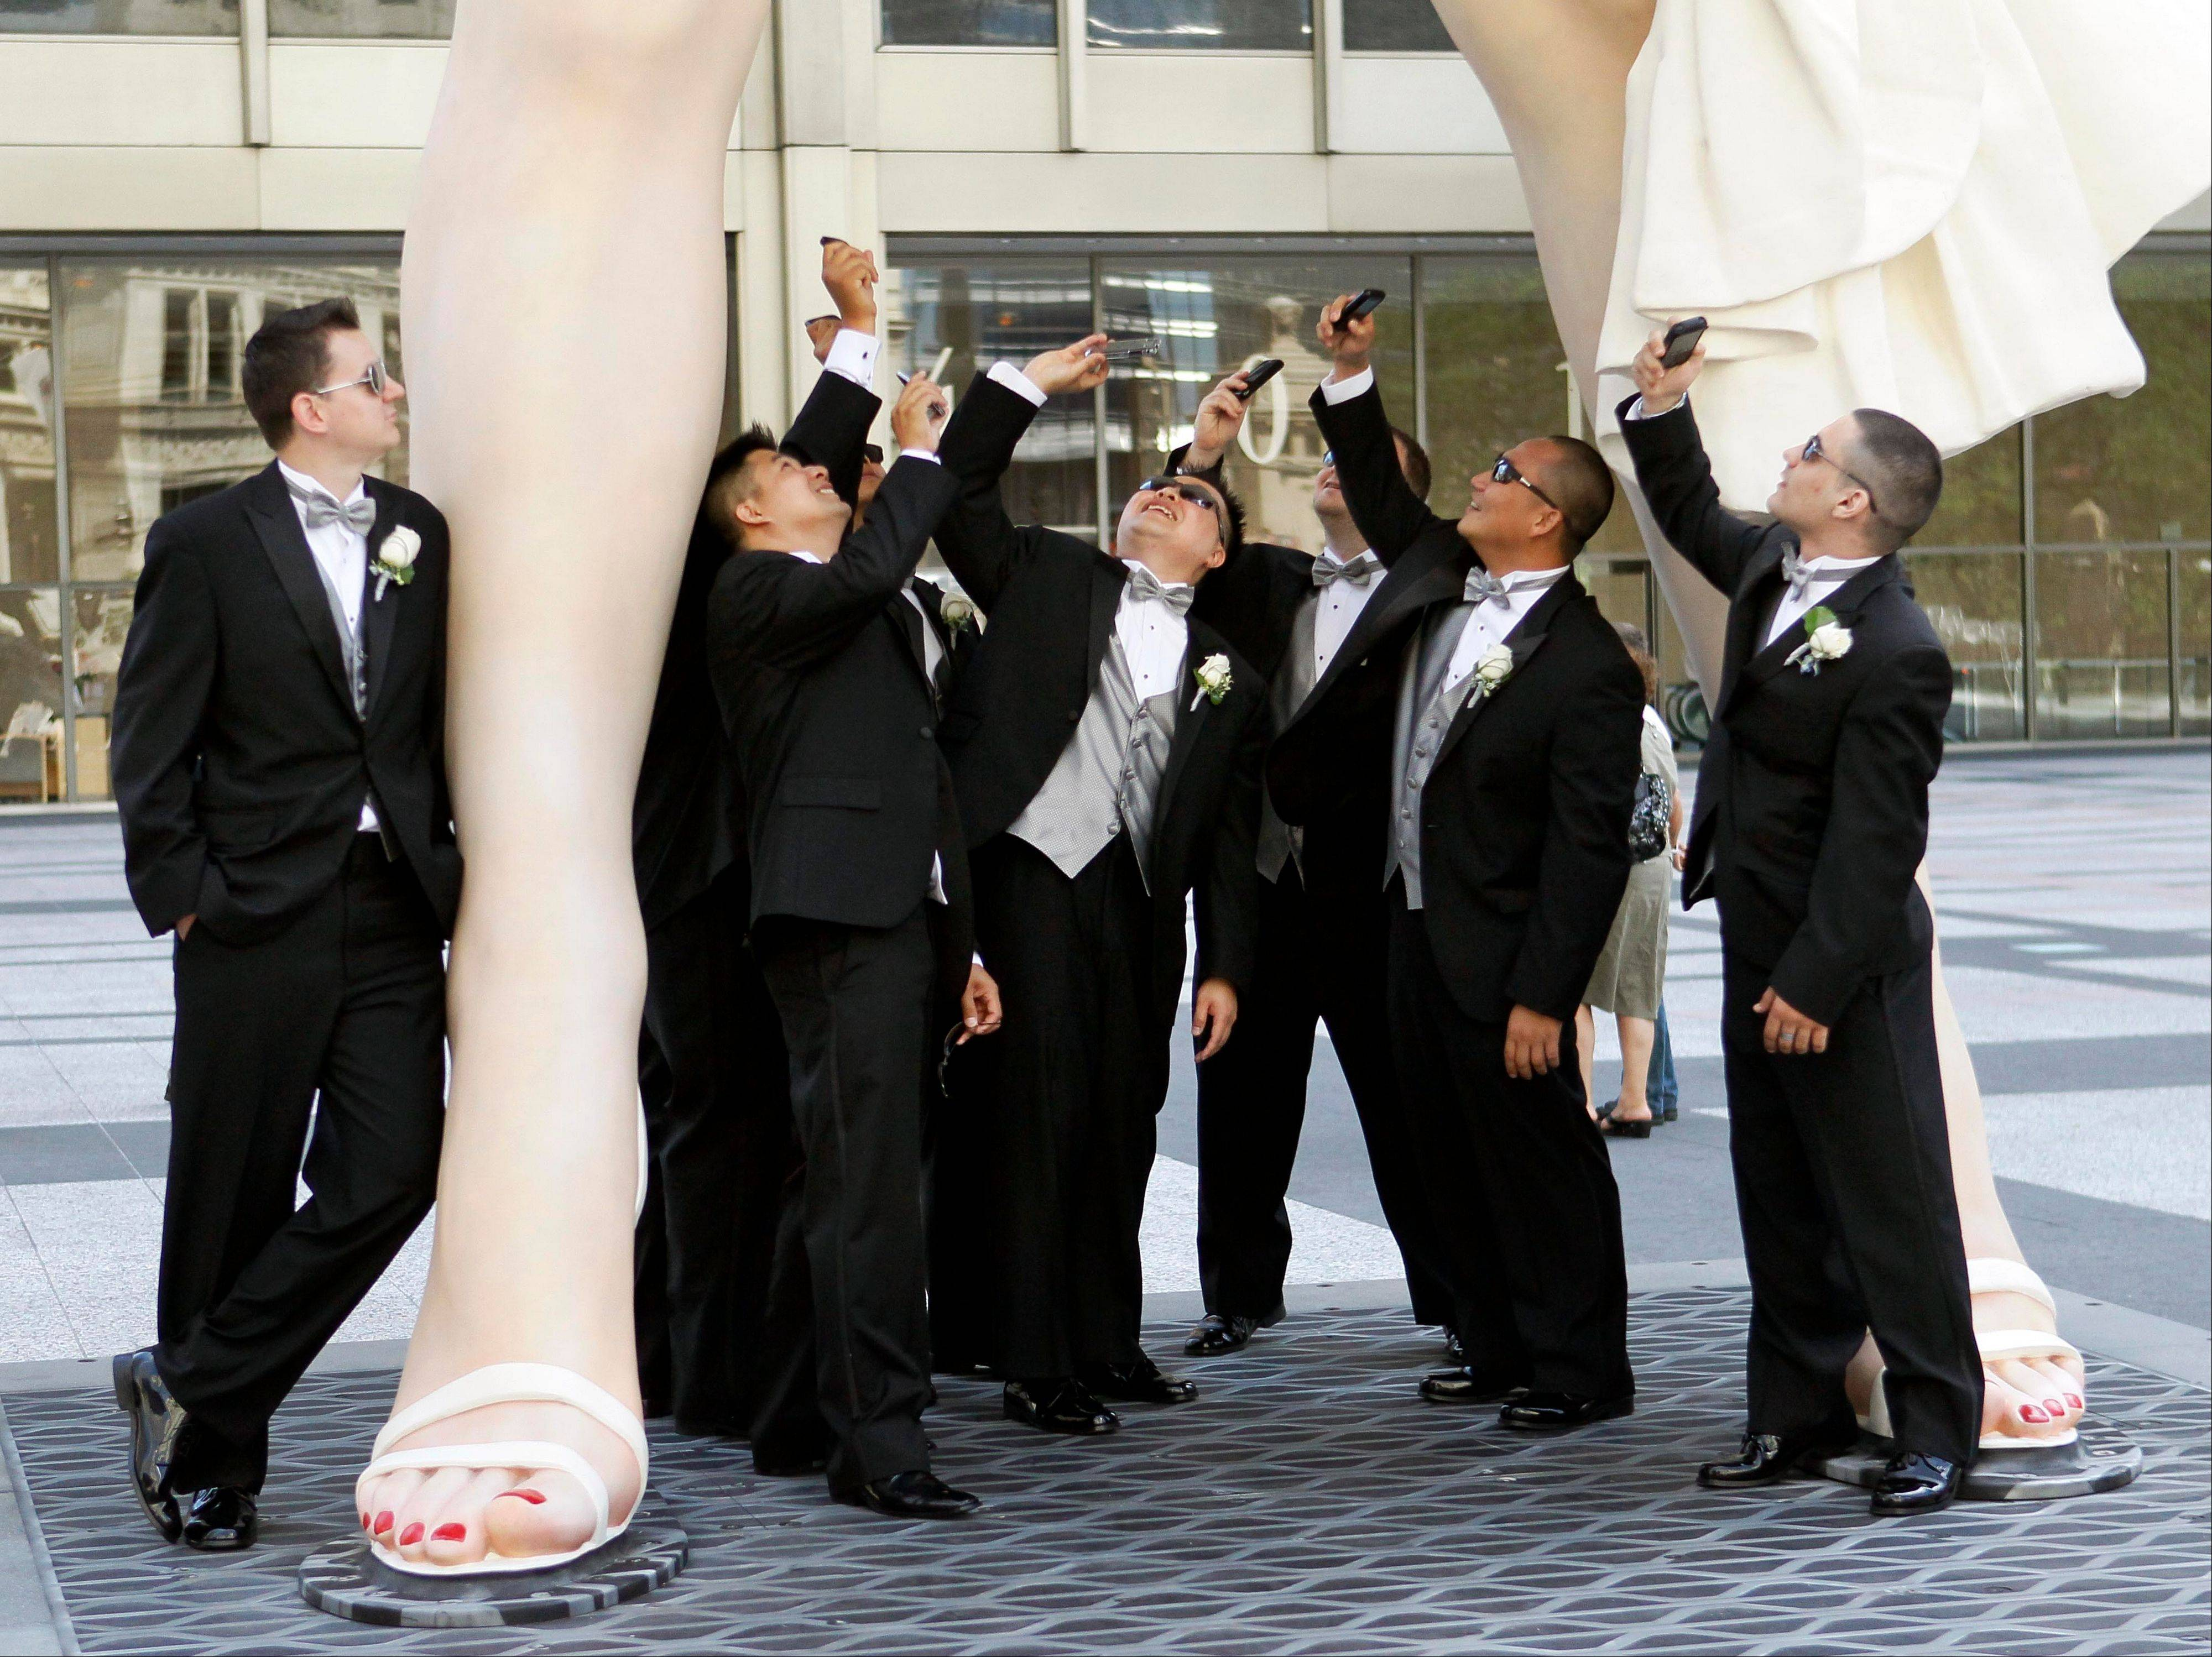 Members of the Hugh and Anya Nguyen wedding party pose under Seward Johnson's 26-foot-tall sculpture of Marilyn Monroe, in her most famous windblown pose, on Michigan Ave. in Chicago.